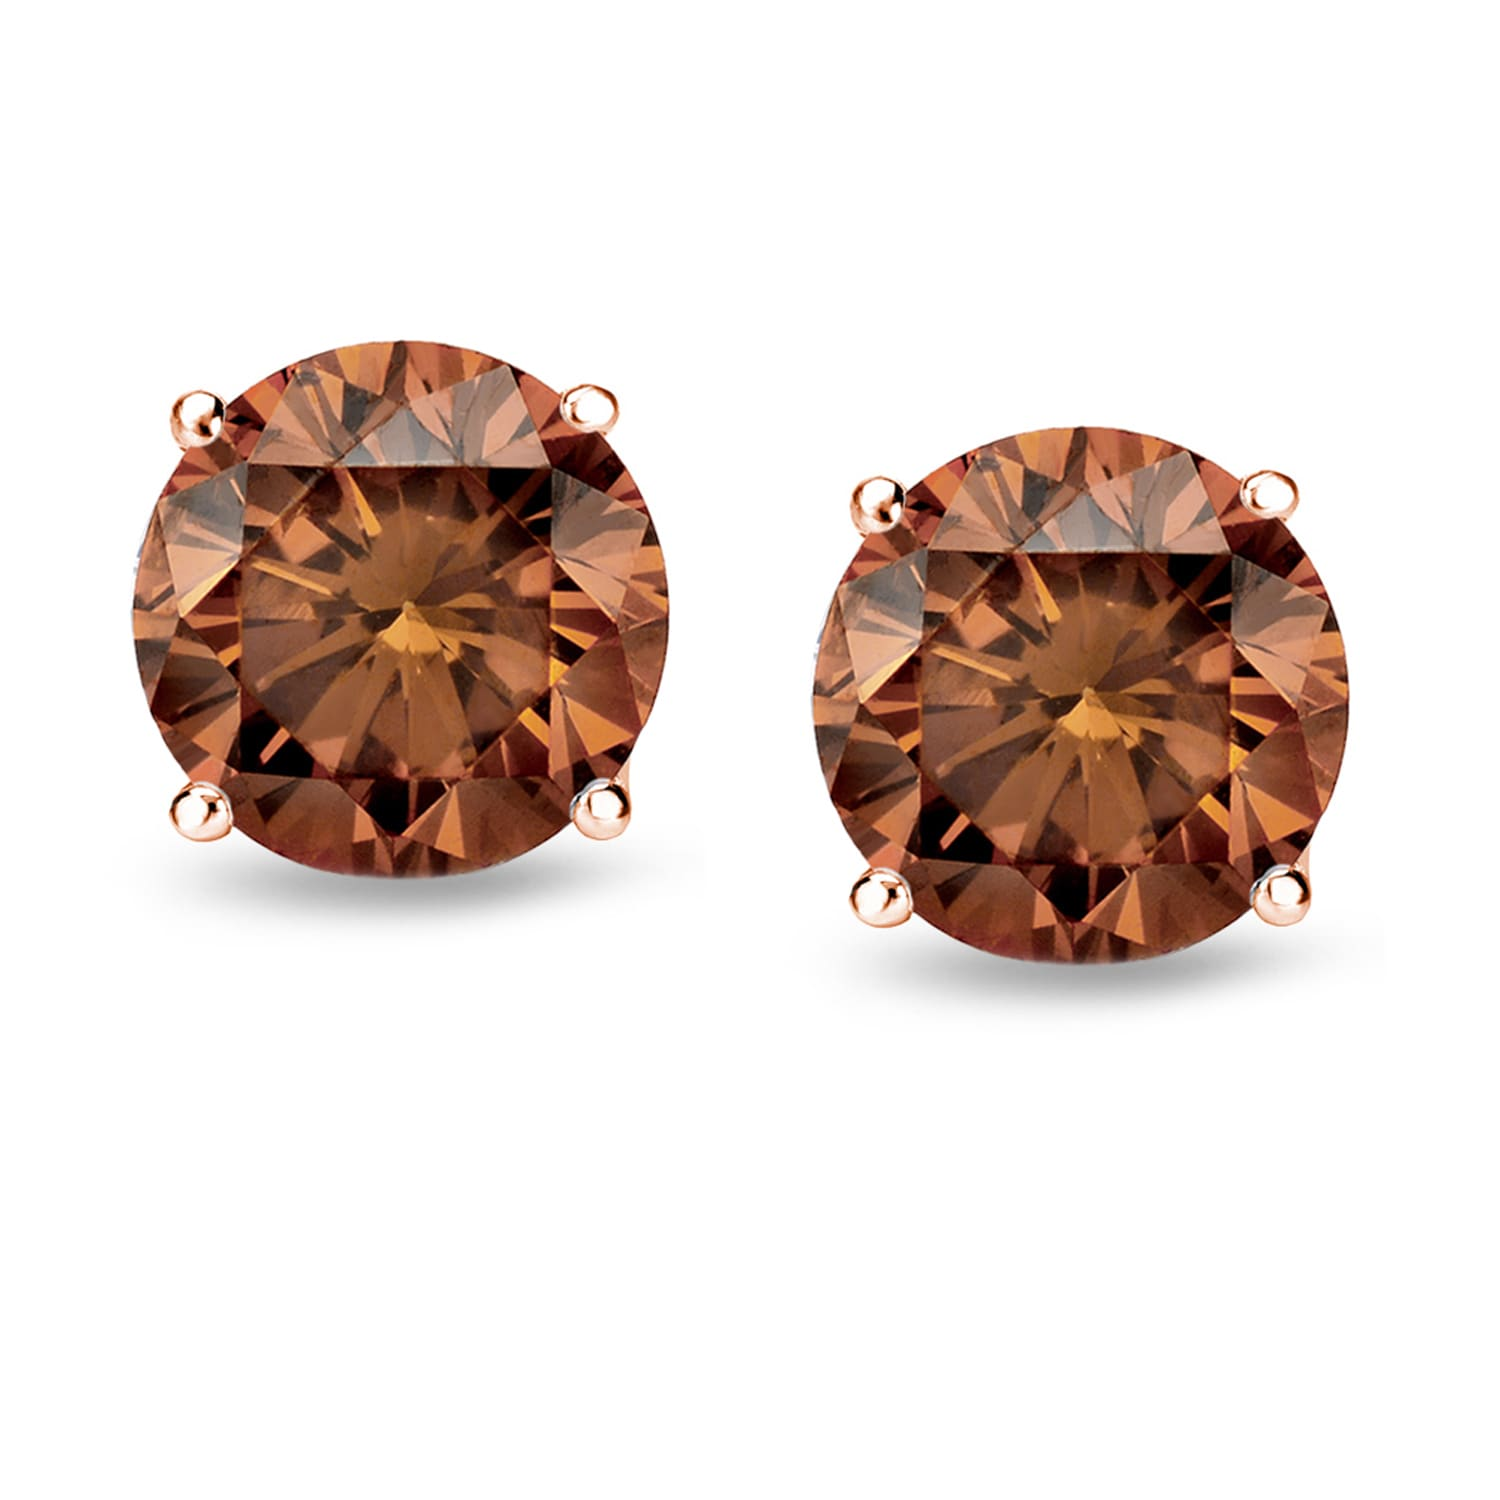 a to earrings floral brown diamond email almas stud friend